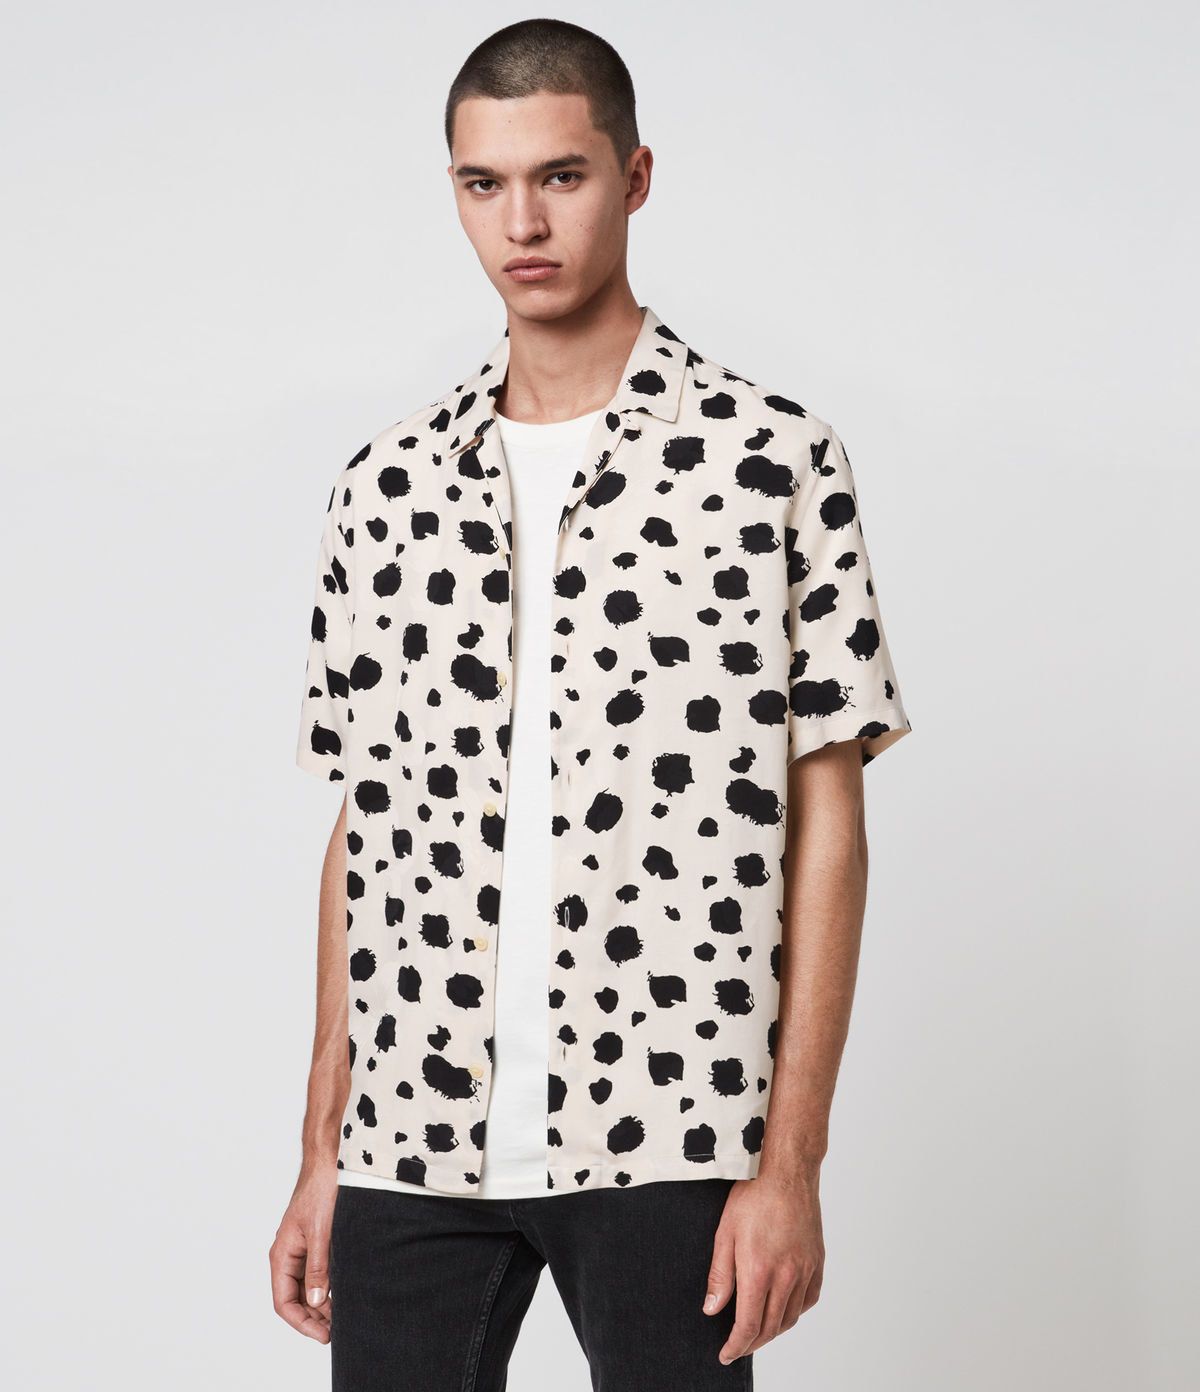 model wearing a button down short sleeve dress in a dalmatian print